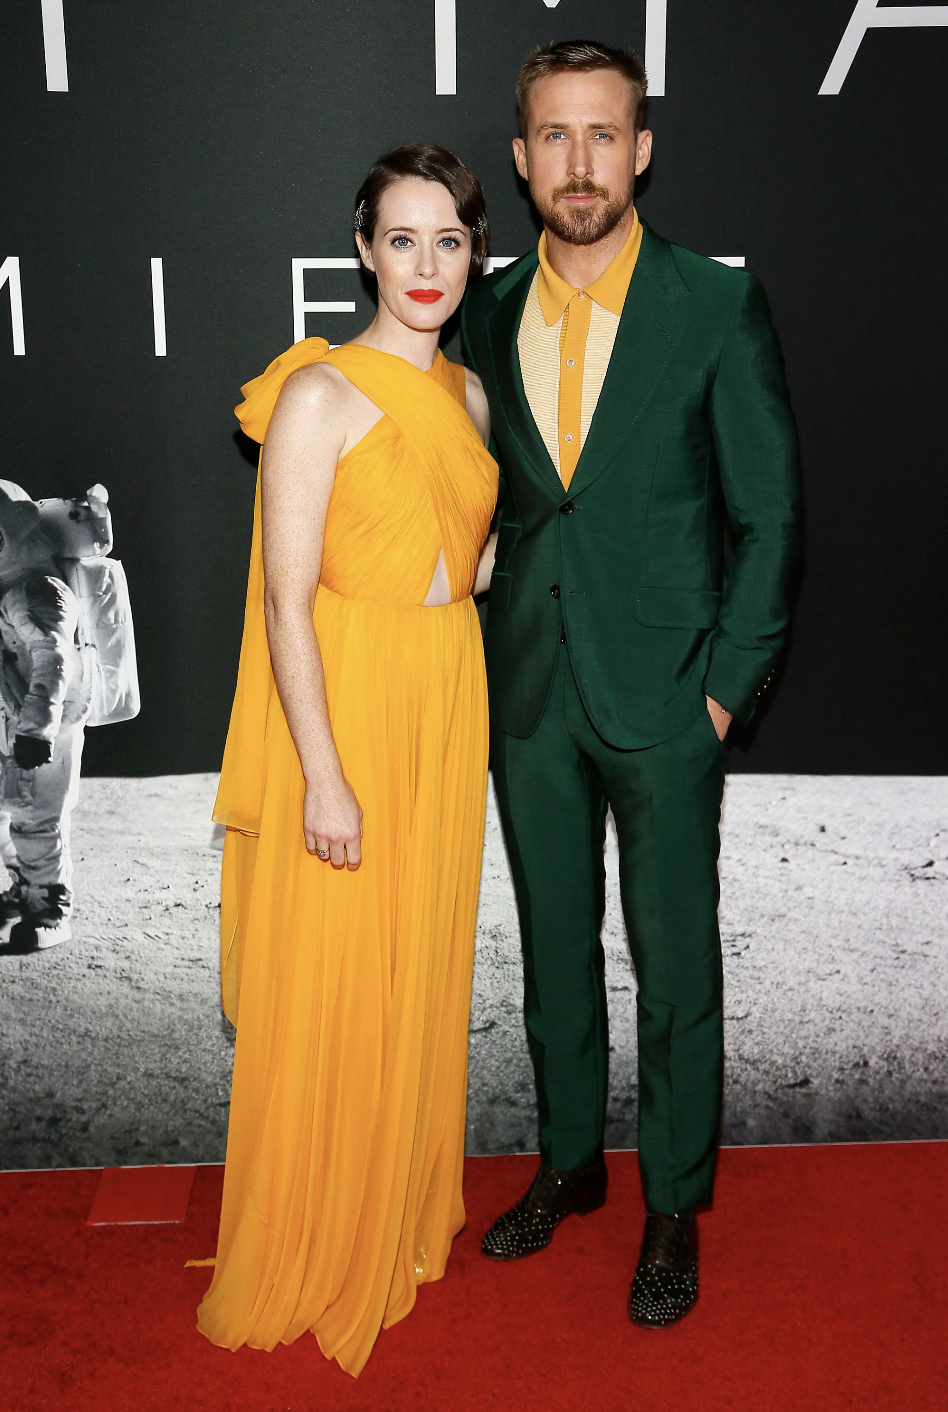 <p>On 4 October, Claire Foy won in the style stakes yet again as she stepped out in a yellow gown by Oscar de la Renta to attend the 'First Man' film premiere in Washington DC, USA. Ryan Gosling matched her dress with a bright yellow polo shirt, worn under a green satin suit. <i>[Photo: Rex]</i> </p>